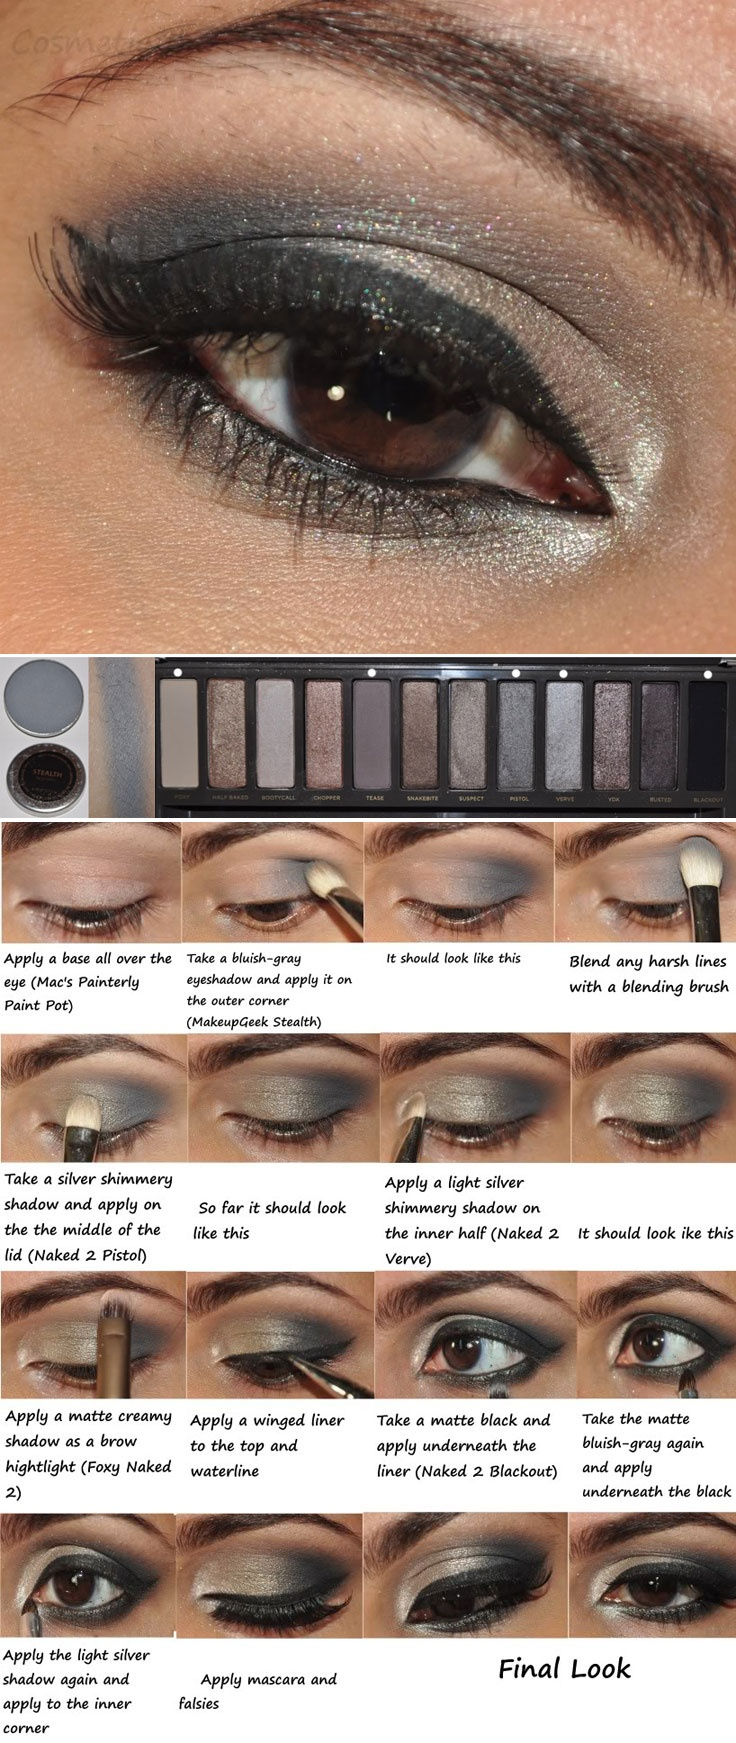 38 best images about Makeup on Pinterest | Smoky eye, Eyes and ...